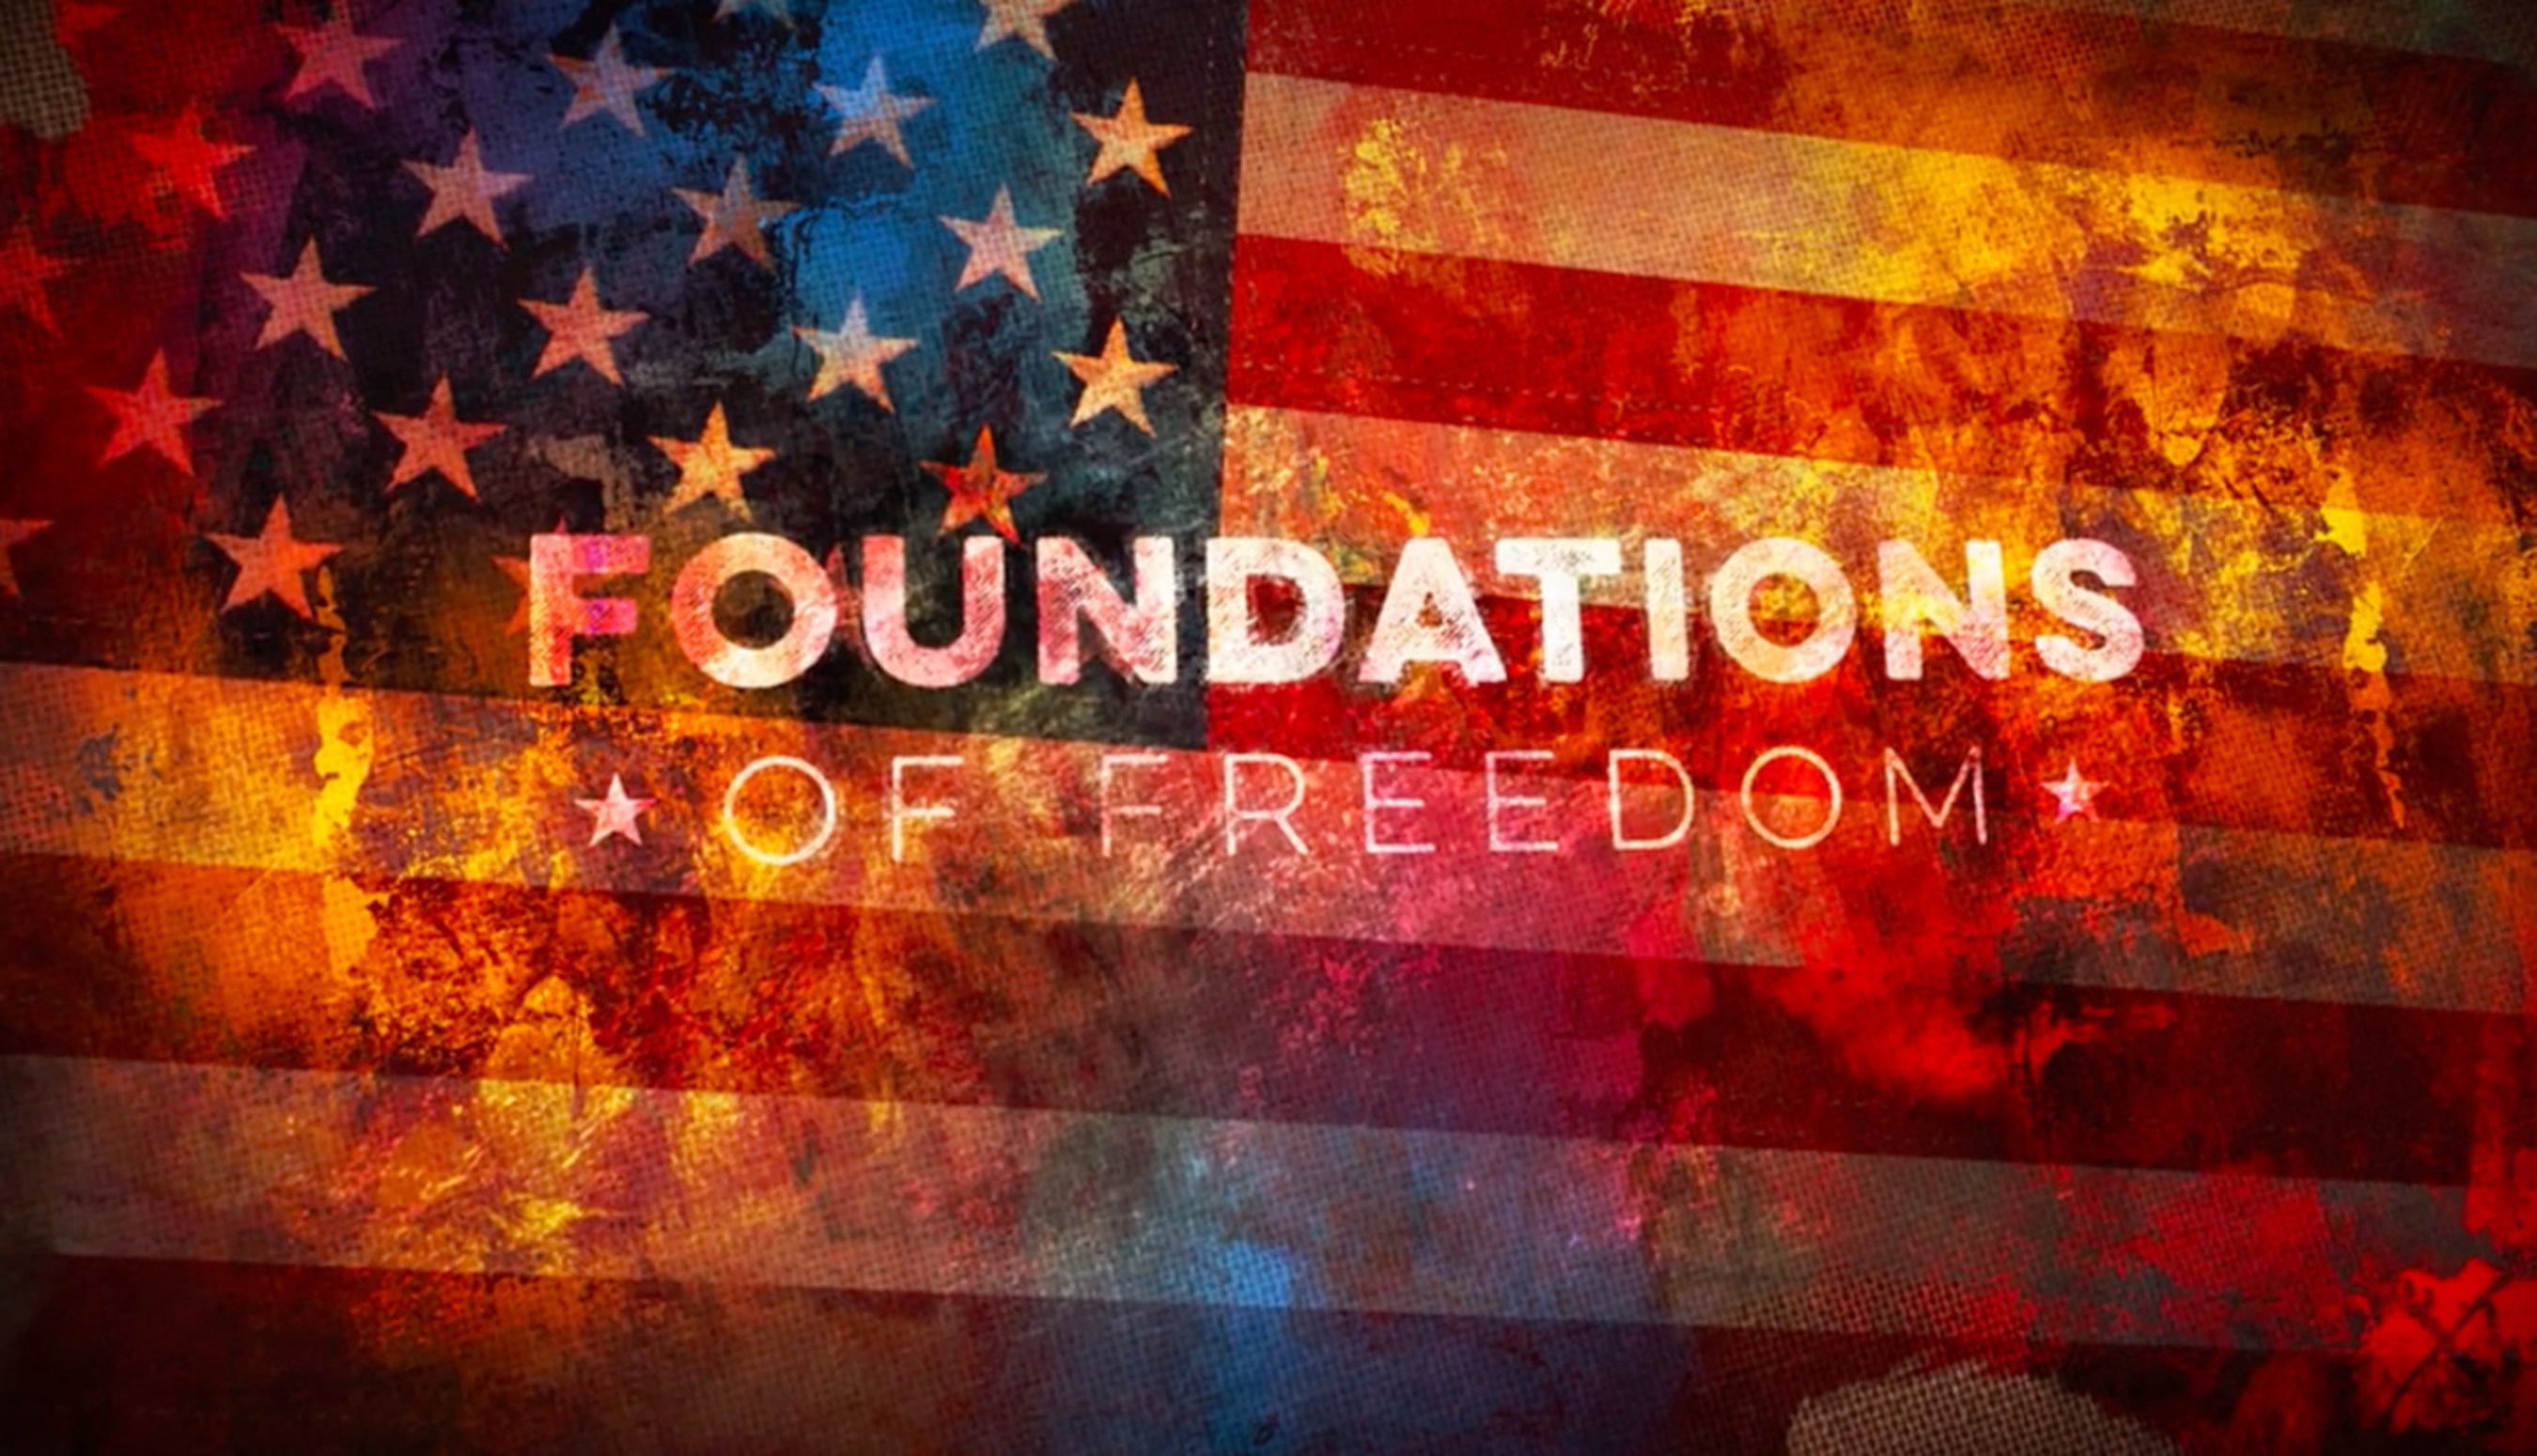 American Historian David Barton's 'Foundations of Freedom' Premieres January 8th -- Only on TBN